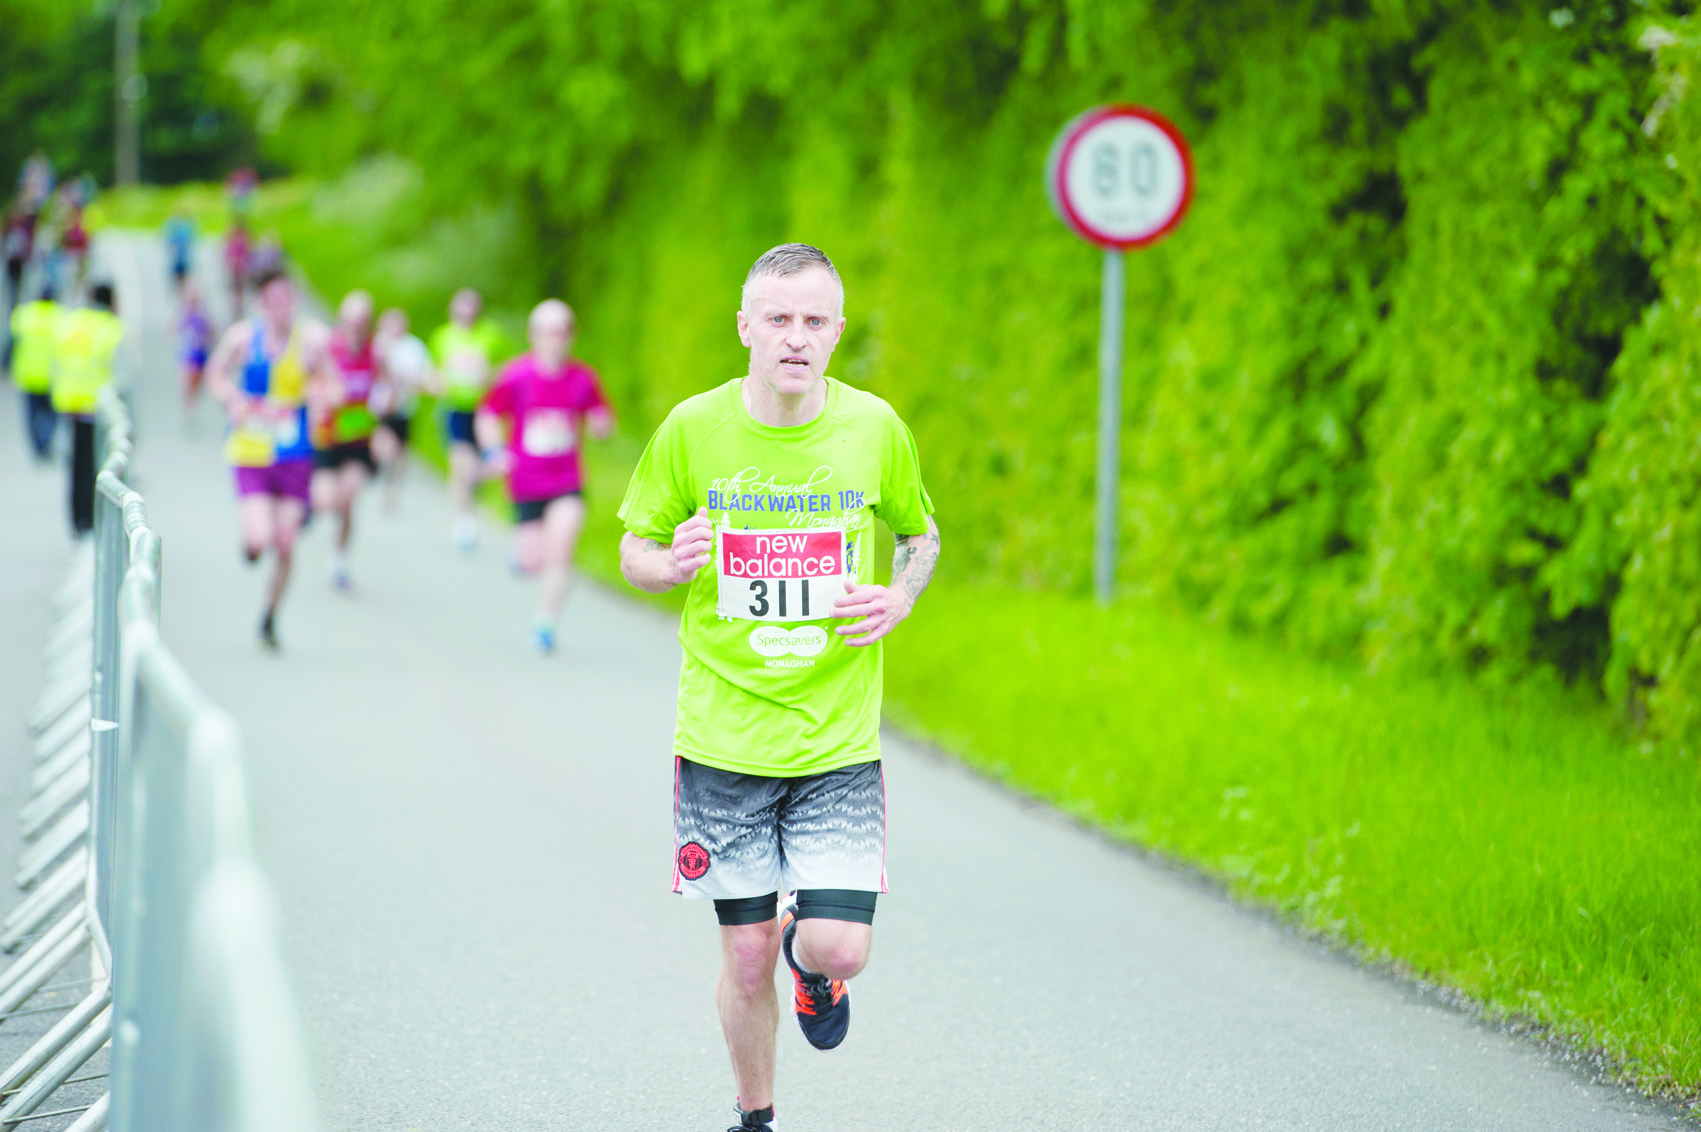 James O'Brien finishing the Blackwater 10k. ©Rory Geary/The Northern Standard